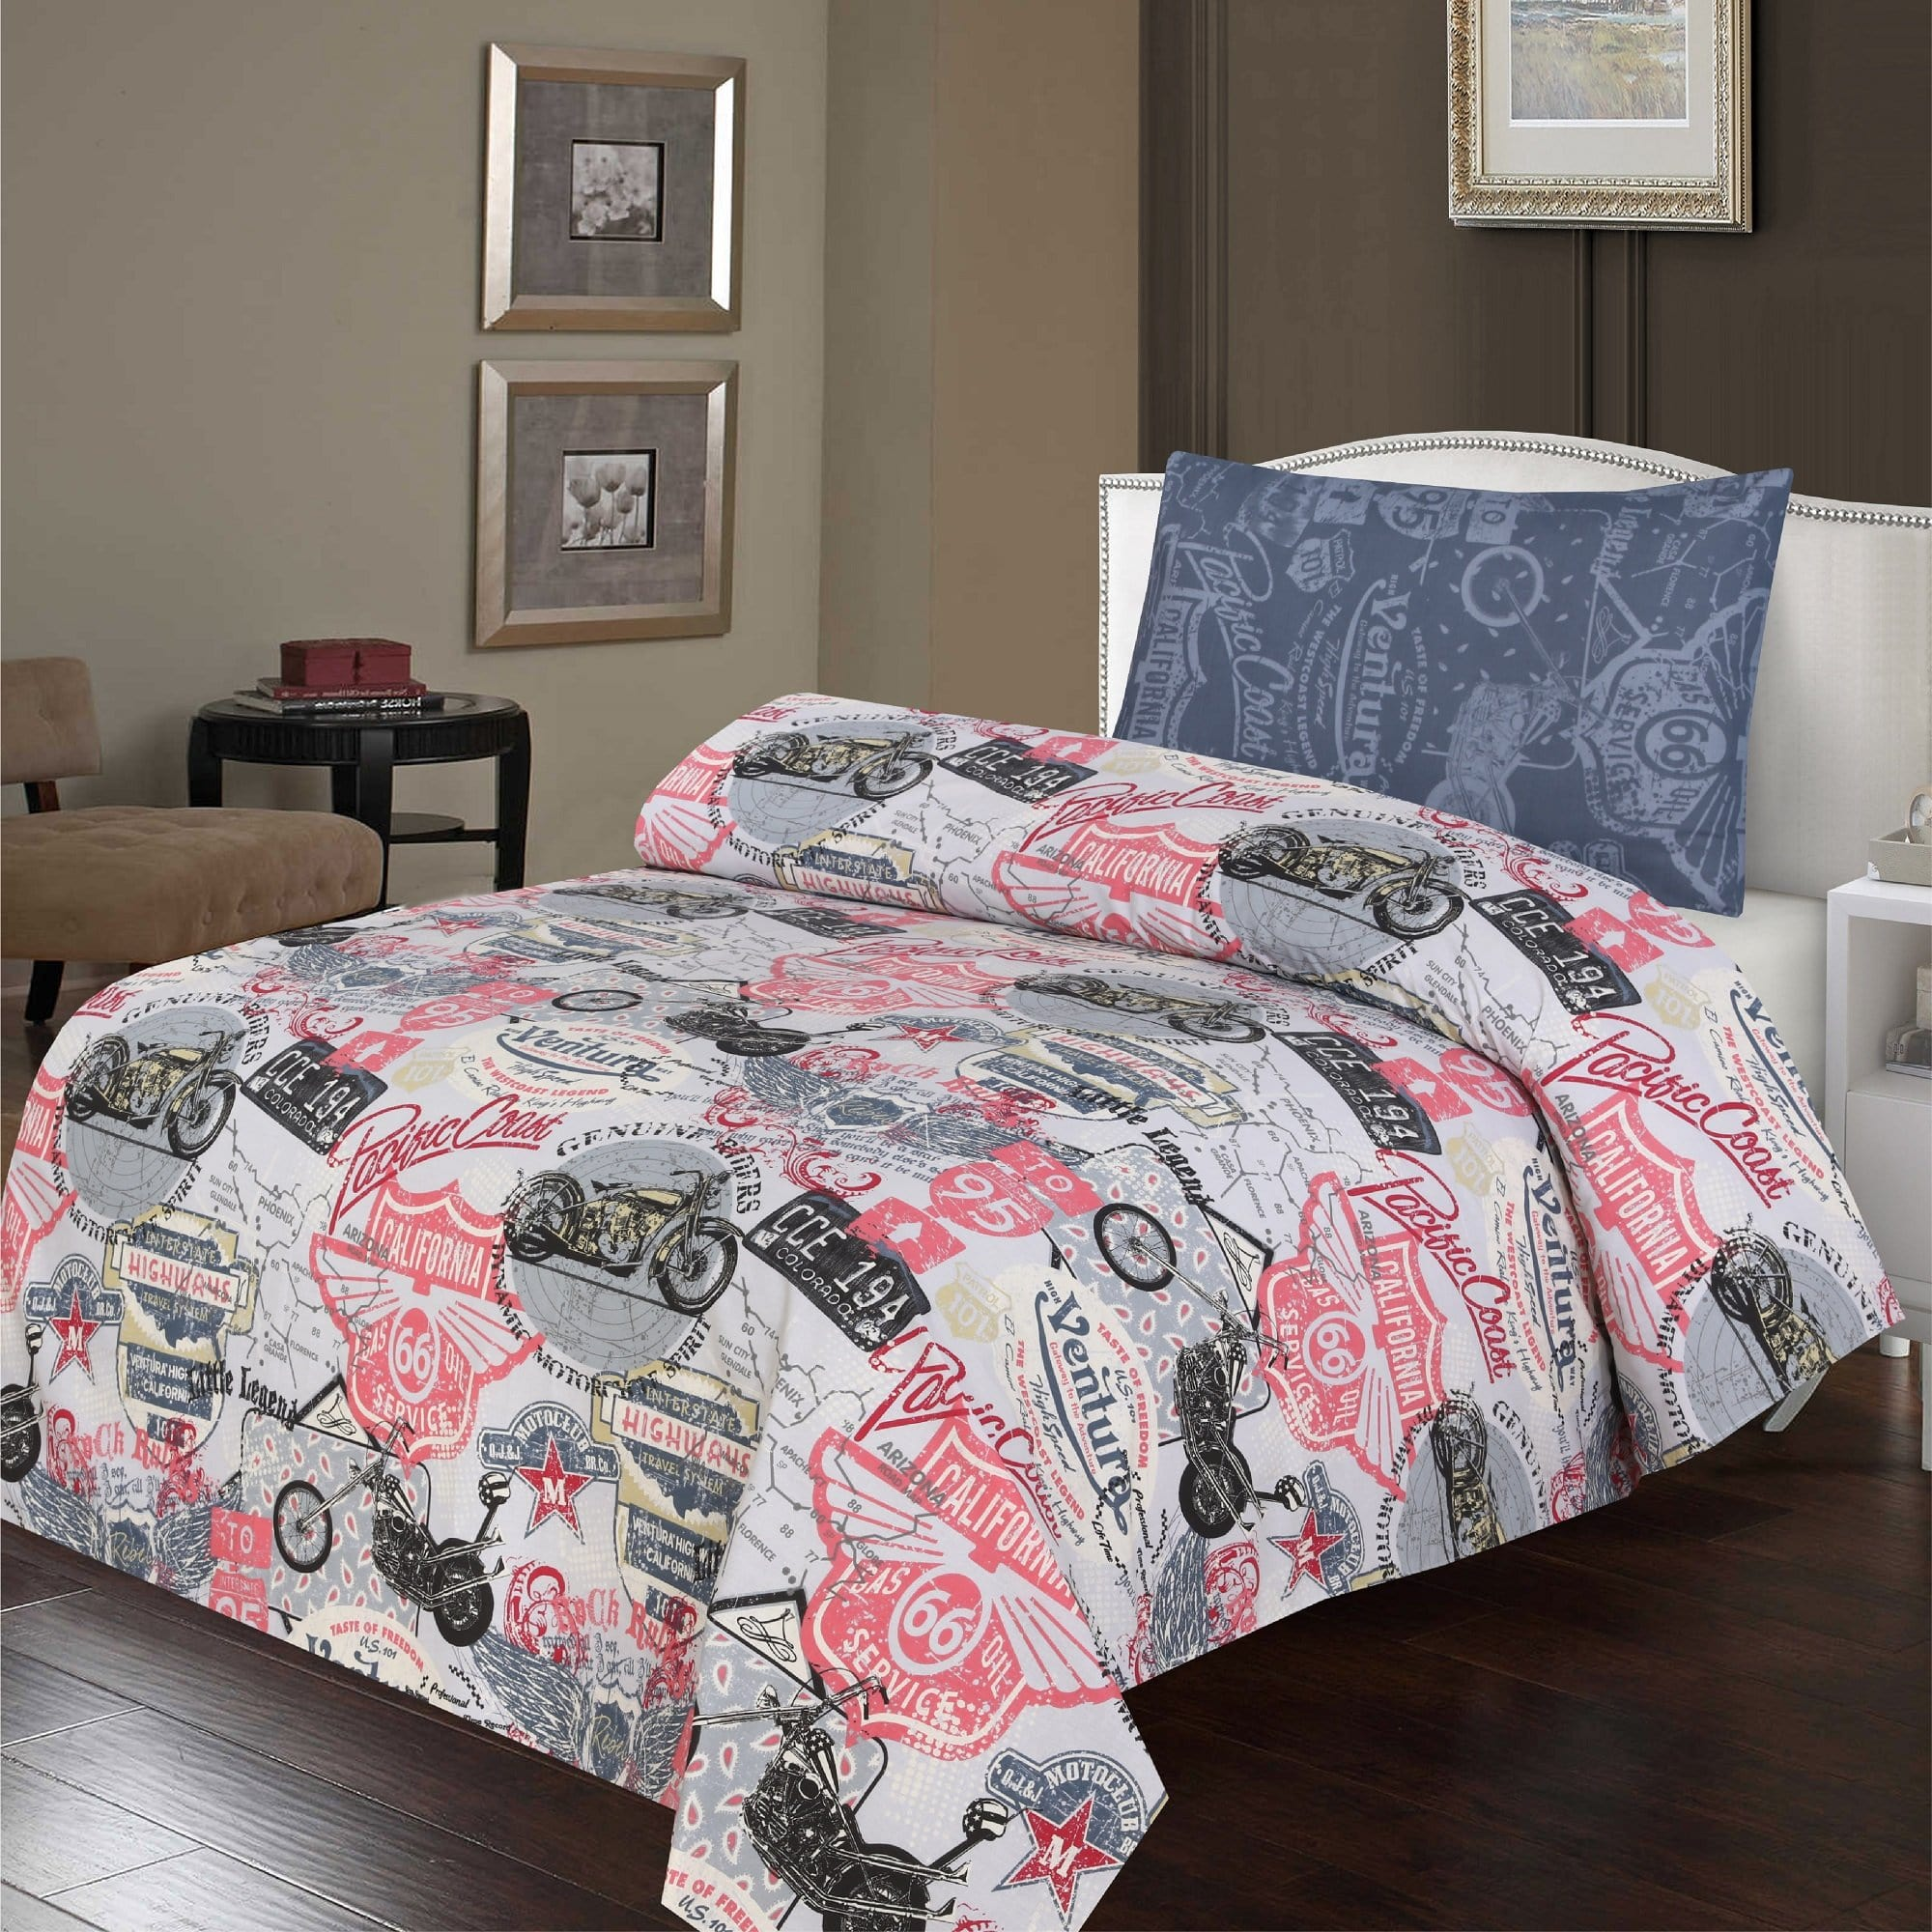 Grace D393-Cotton PC Single Size Bedsheet with 1 Pillow Cover.